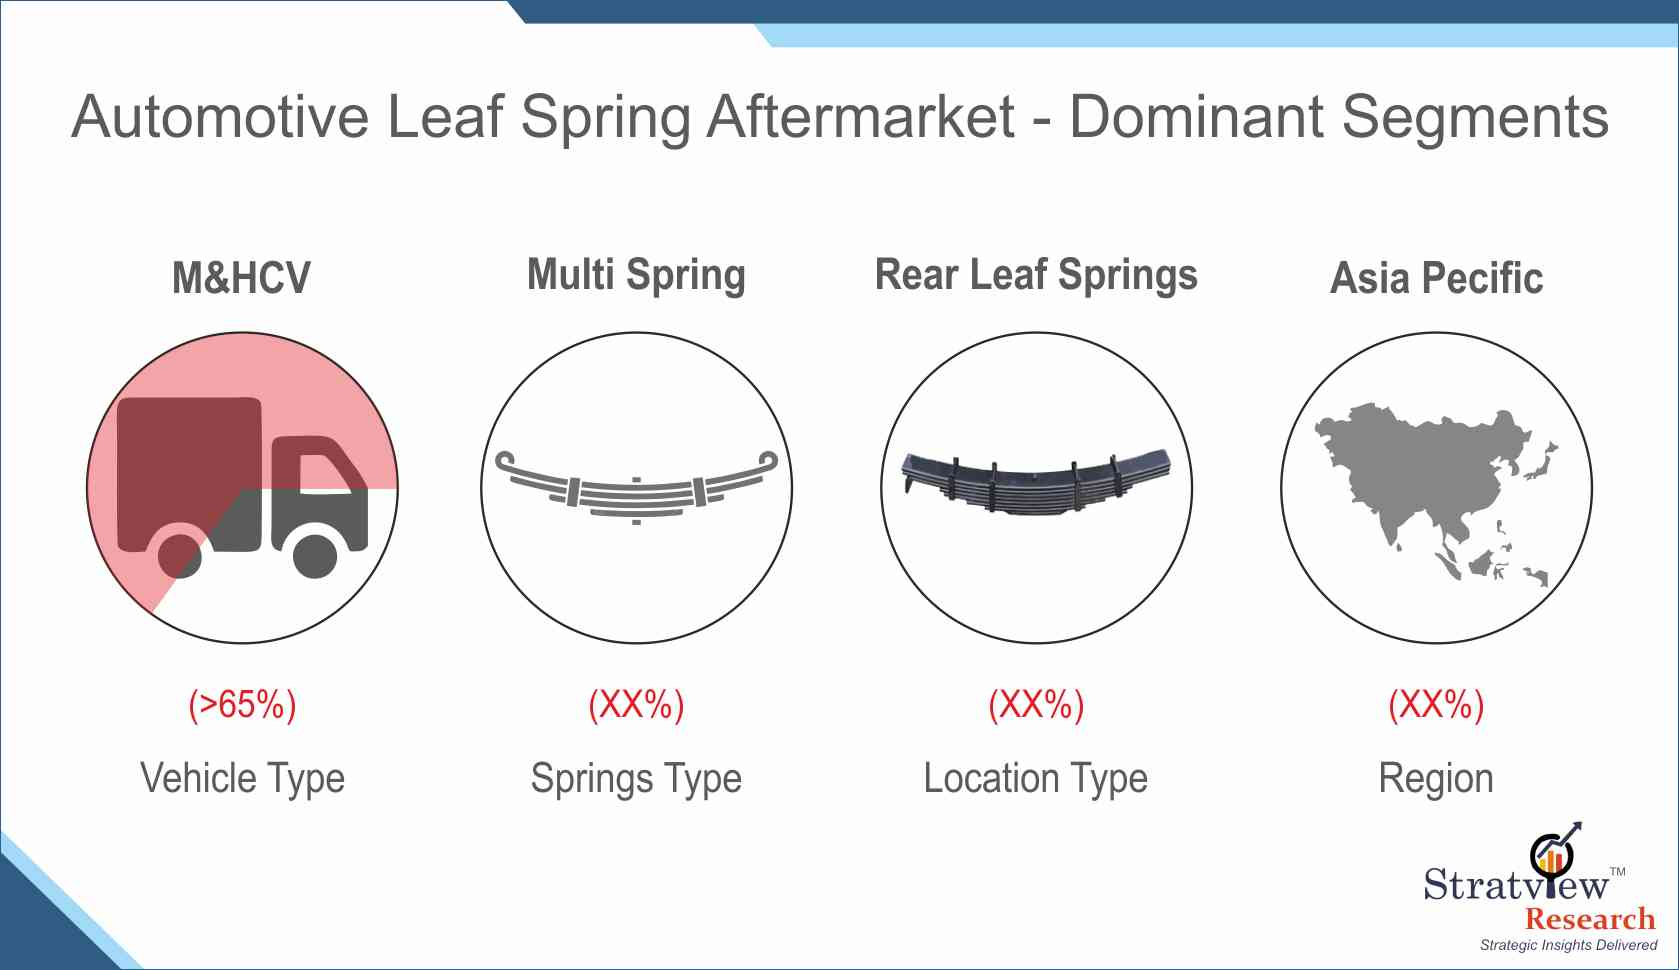 Automotive Leaf Spring Aftermarket Forecast